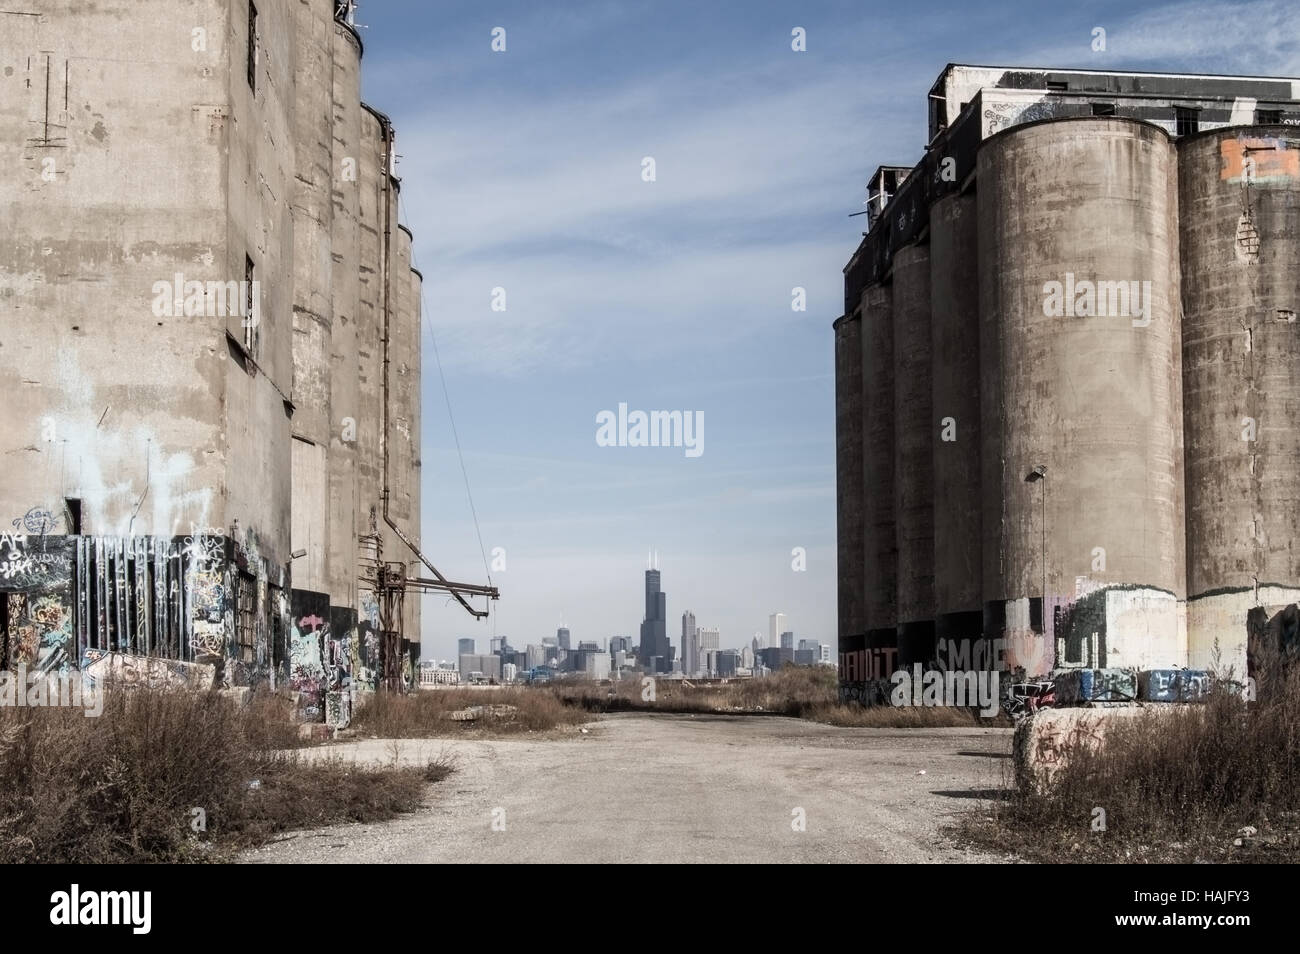 Chicago Skyline as seen from Damen Silos. - Stock Image